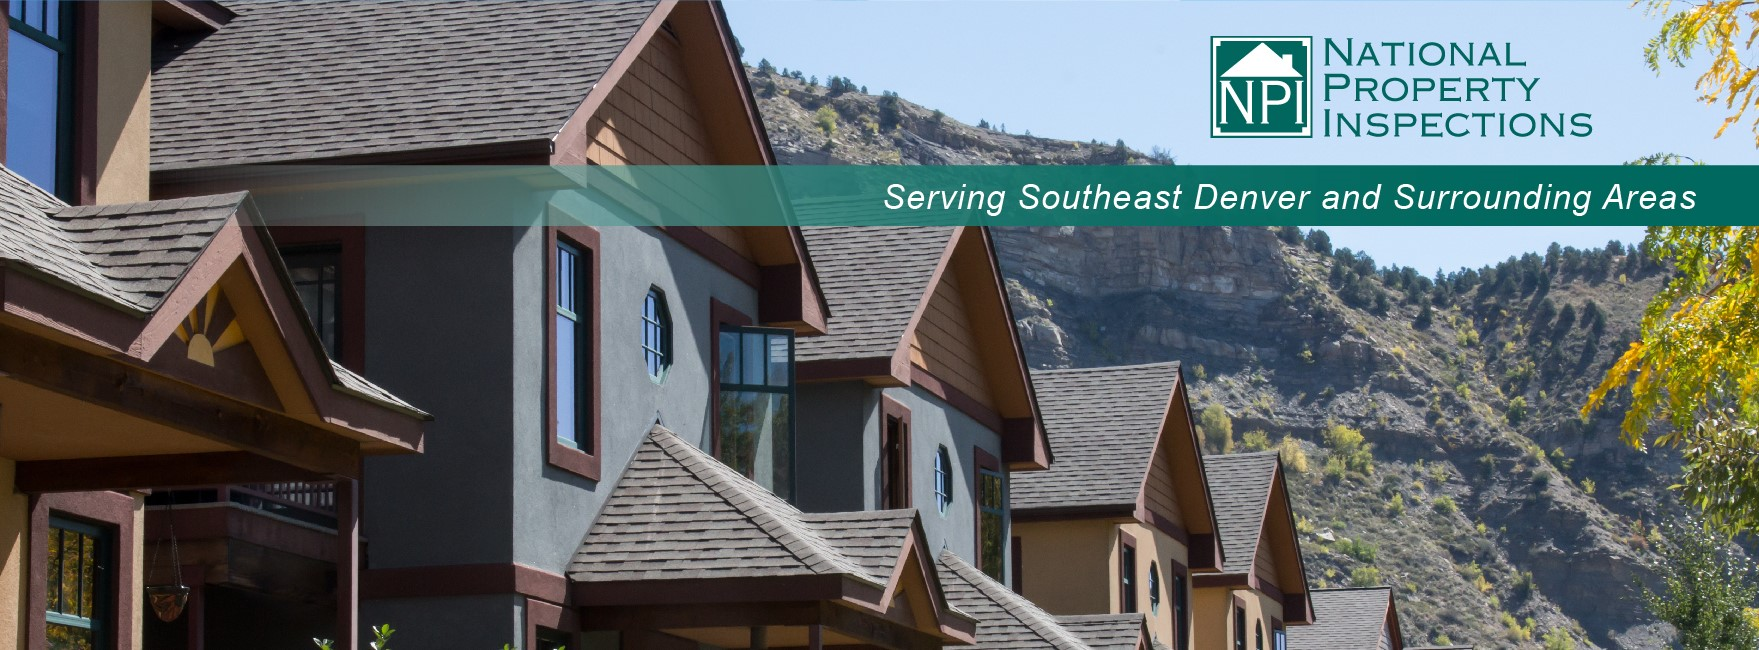 National Property Inspections Southeast Denver reviews | 23468 East Briarwood Place - Aurora CO